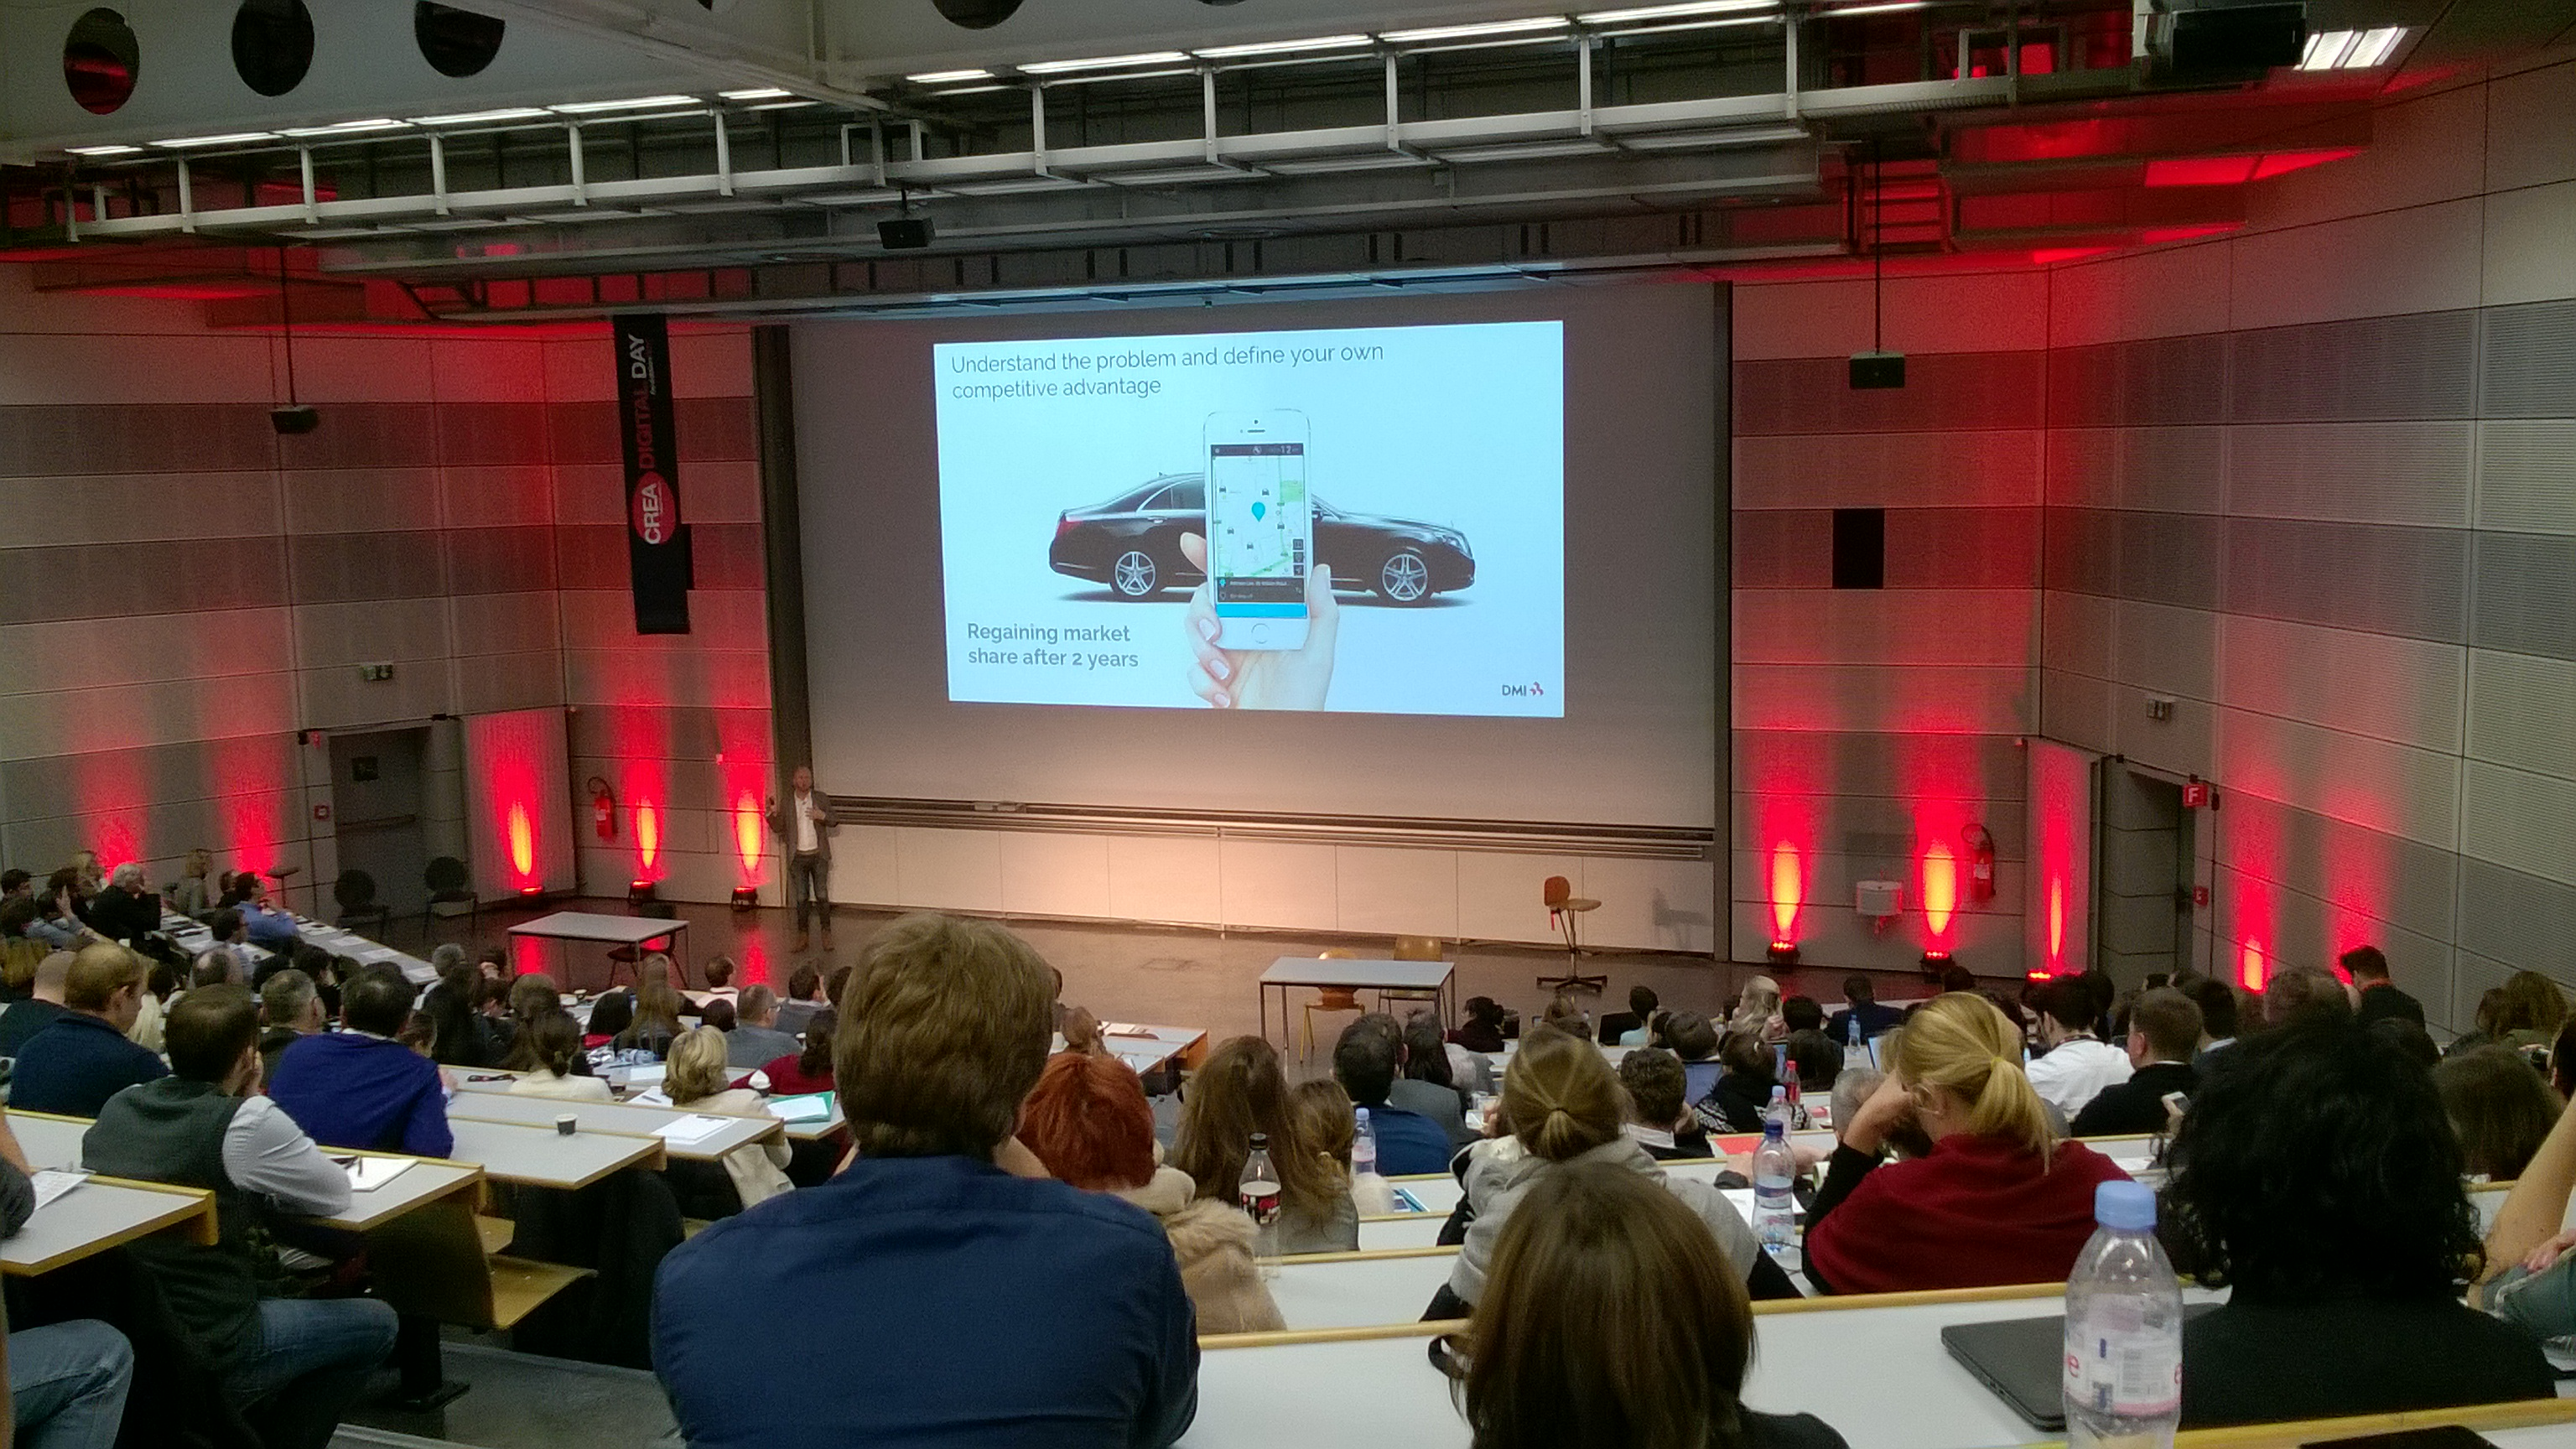 Magnus Jern, from DMI Internaional, about innovation and testing